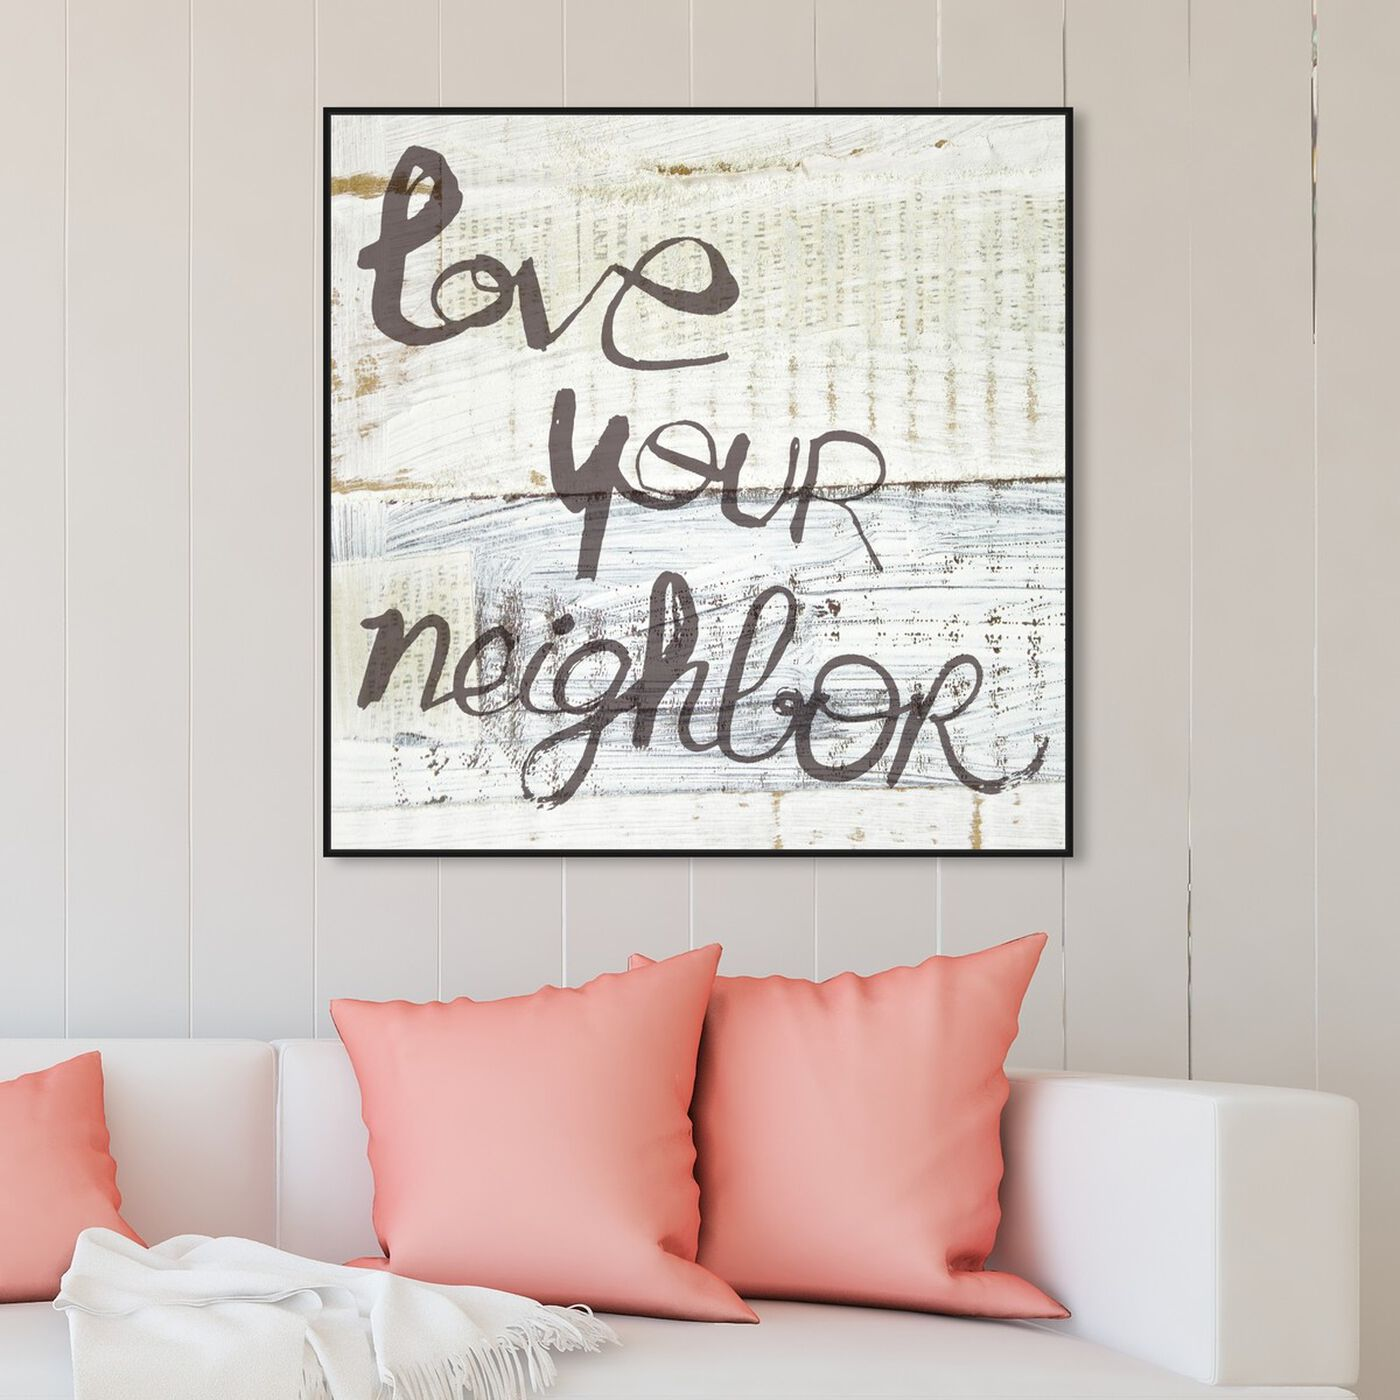 Hanging view of Love Your Neighbor featuring typography and quotes and love quotes and sayings art.